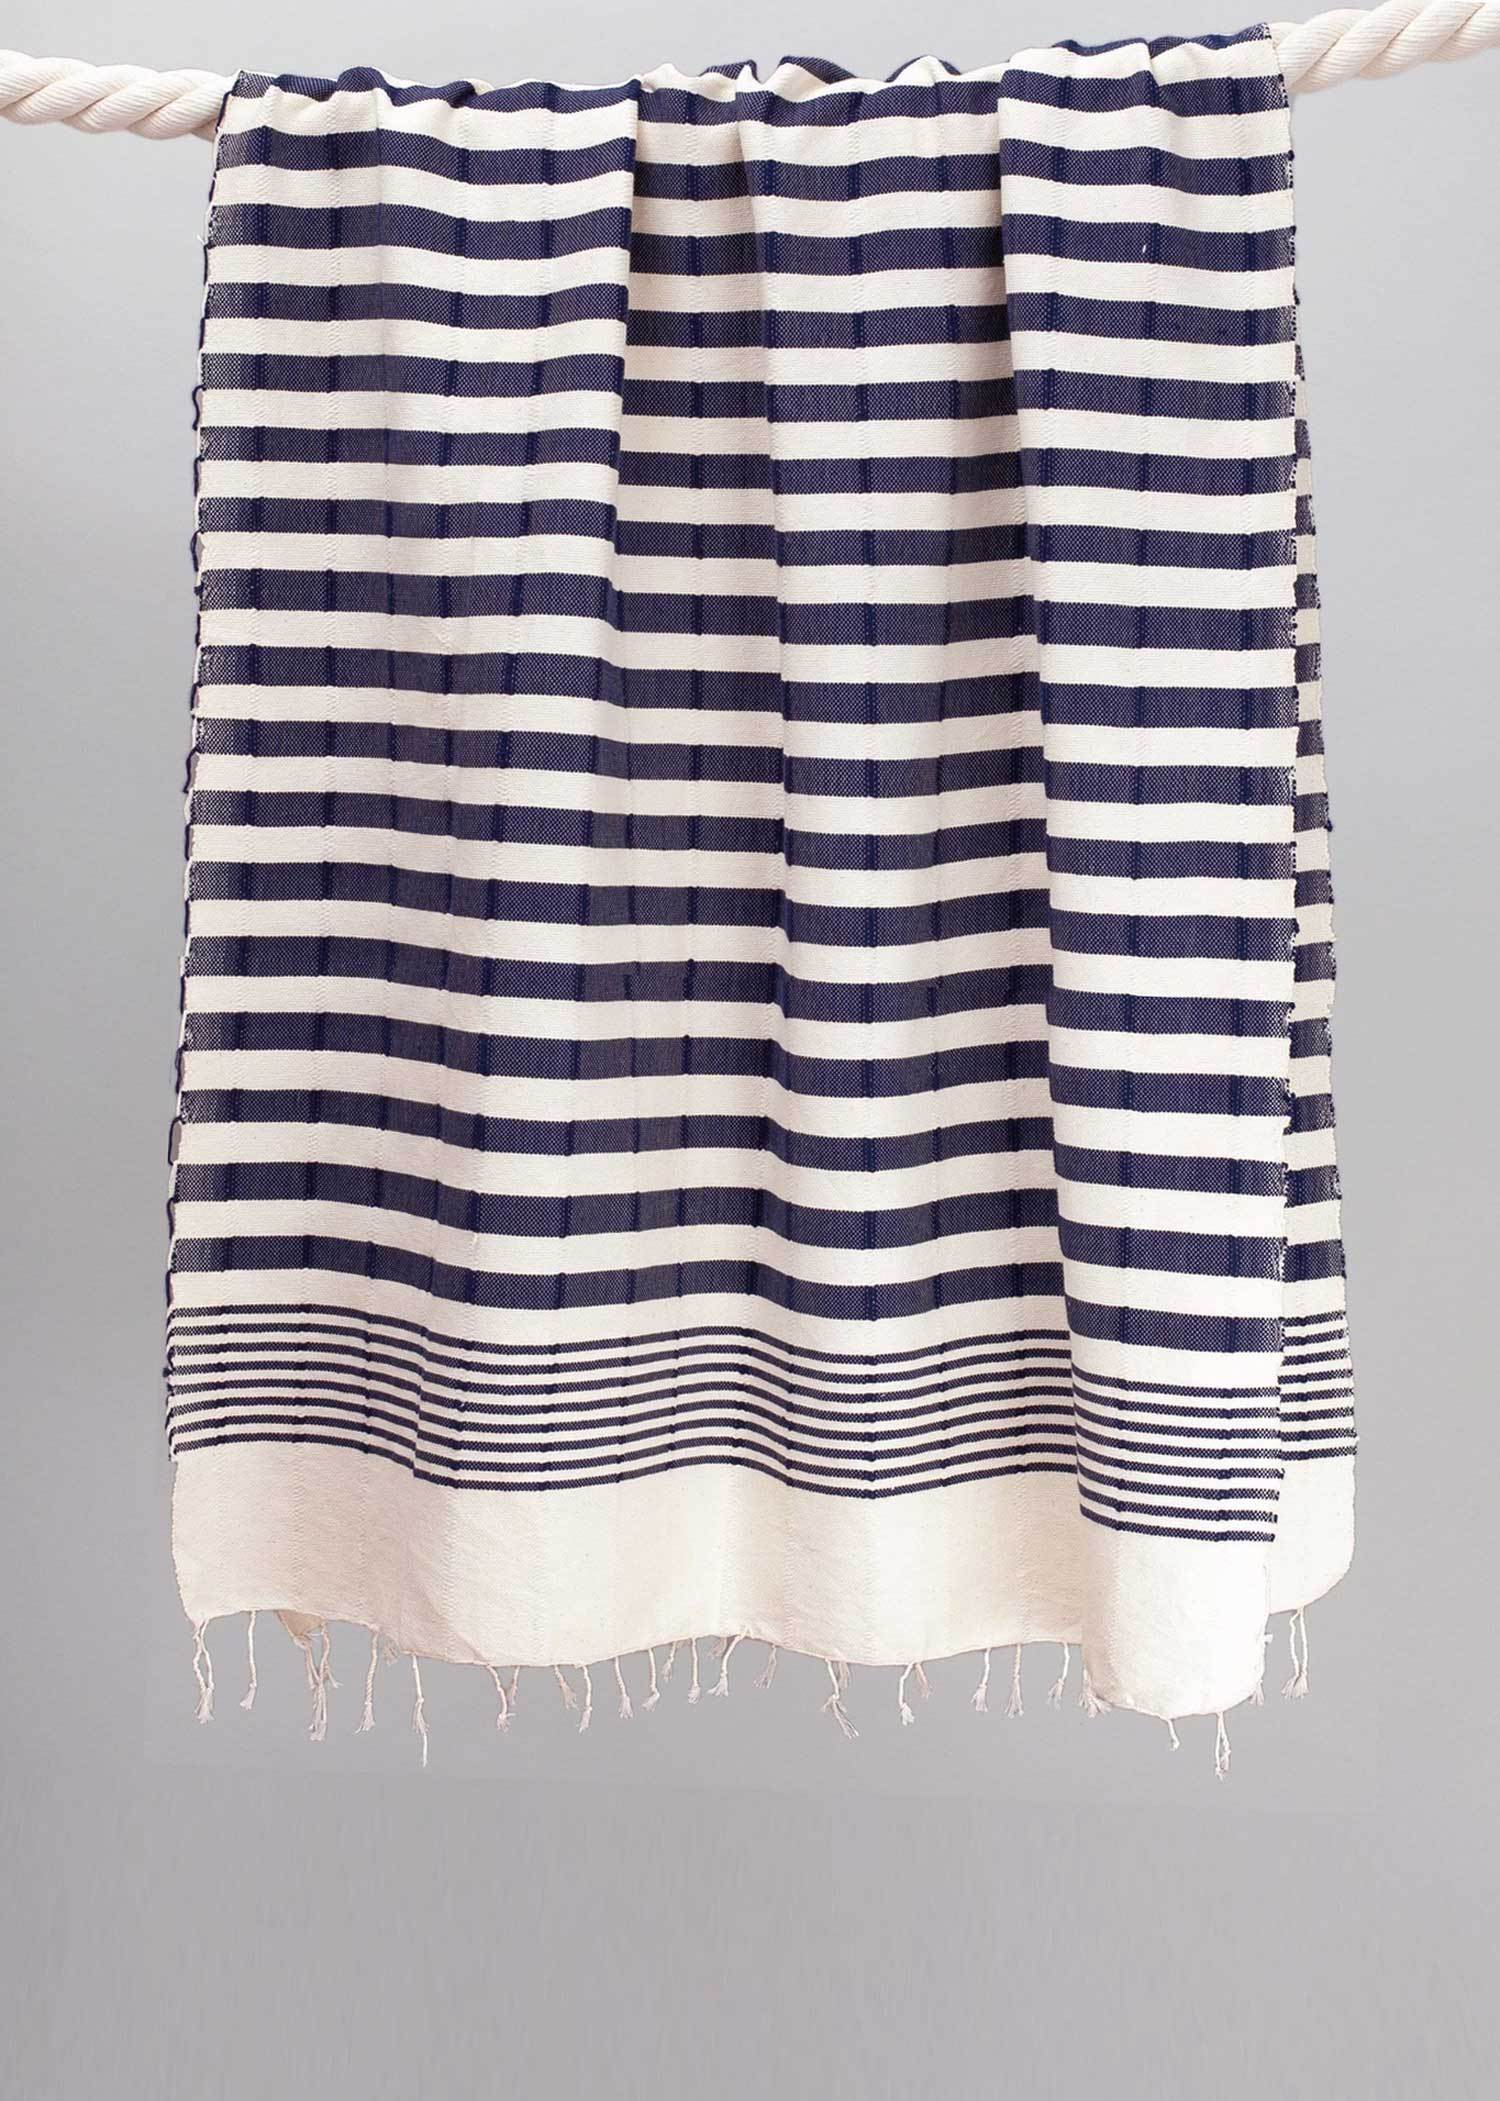 Cannes Turkish Towels